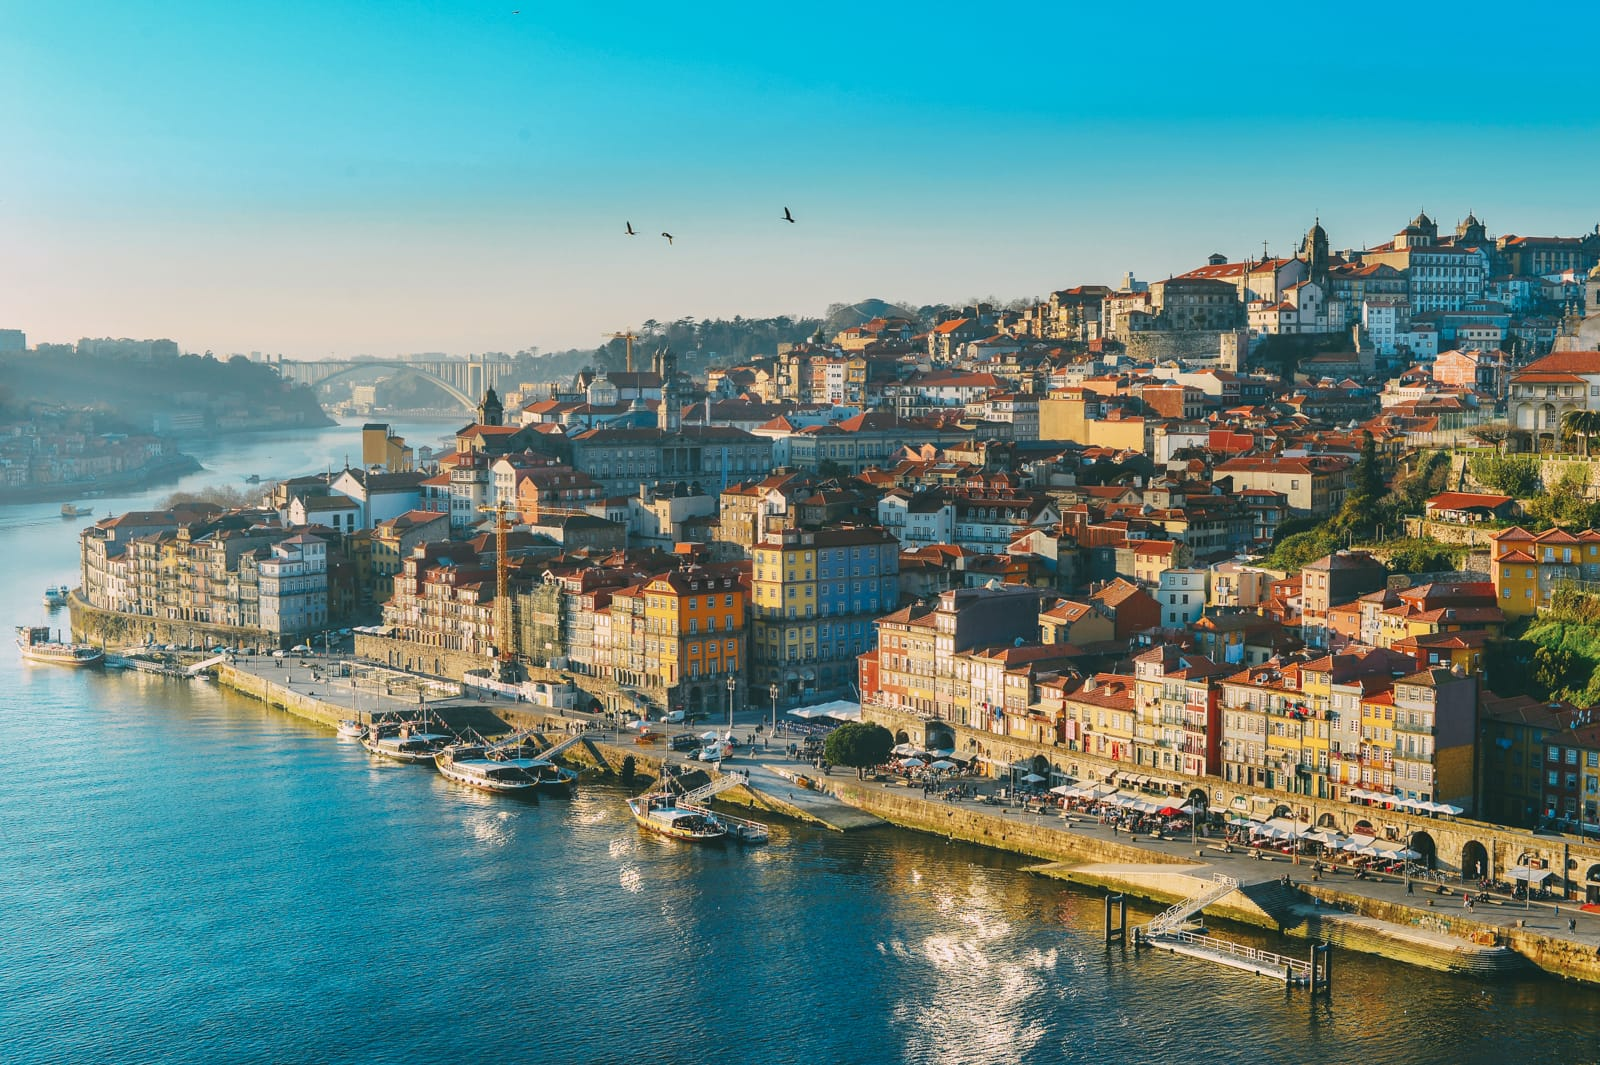 Porto travel guide for first-time visitors - Best Places to Visit in Europe - planningforeurope.com (1)